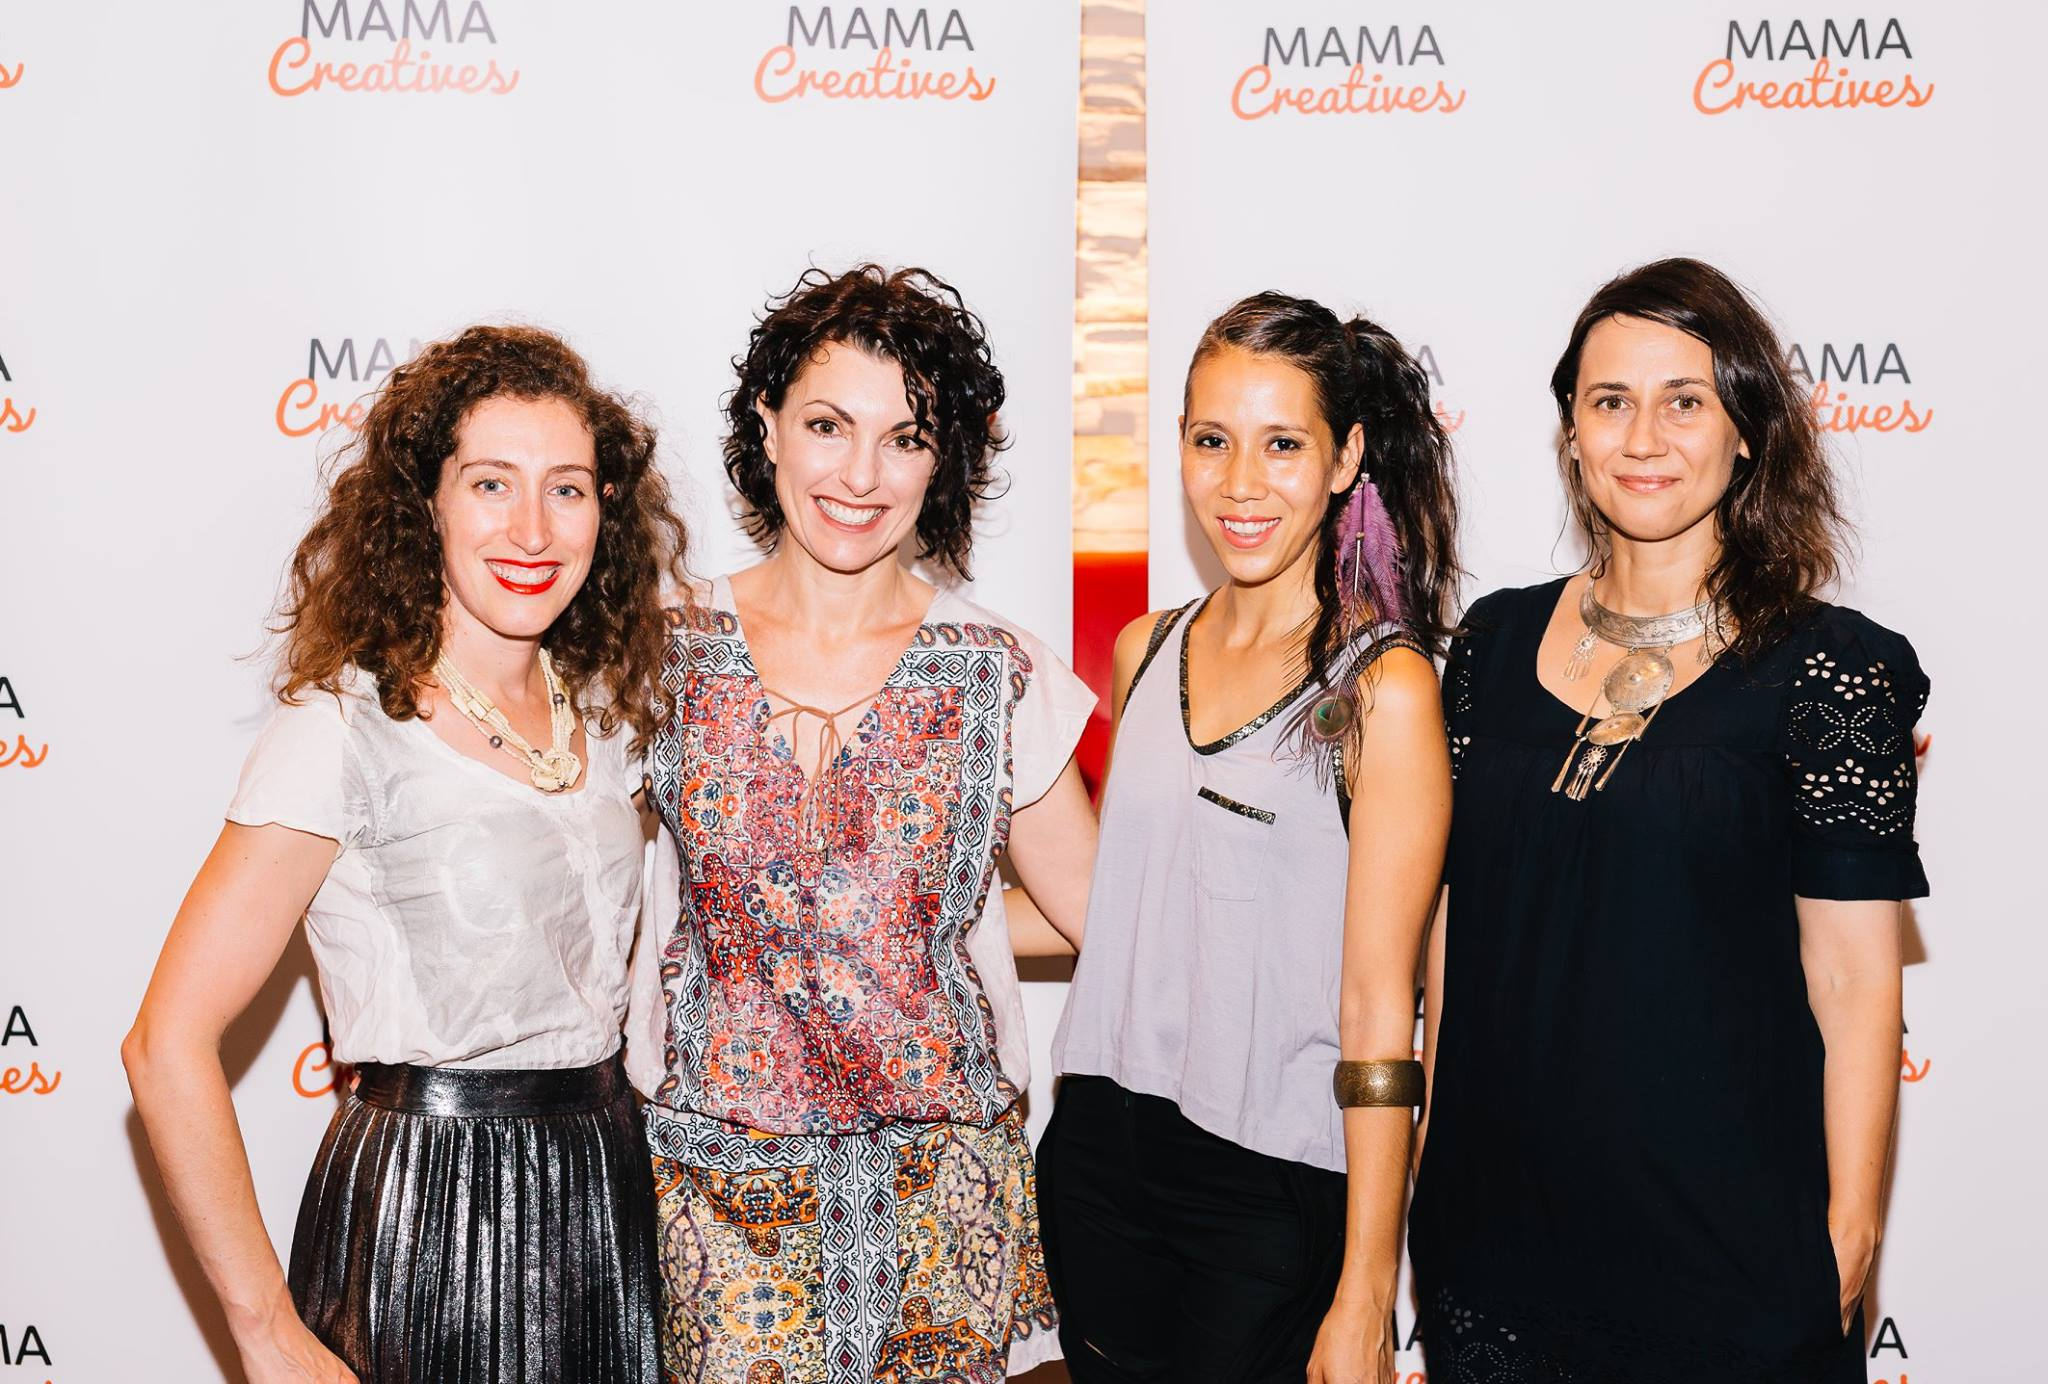 The stylish, fabulous and very talented creative mamas.